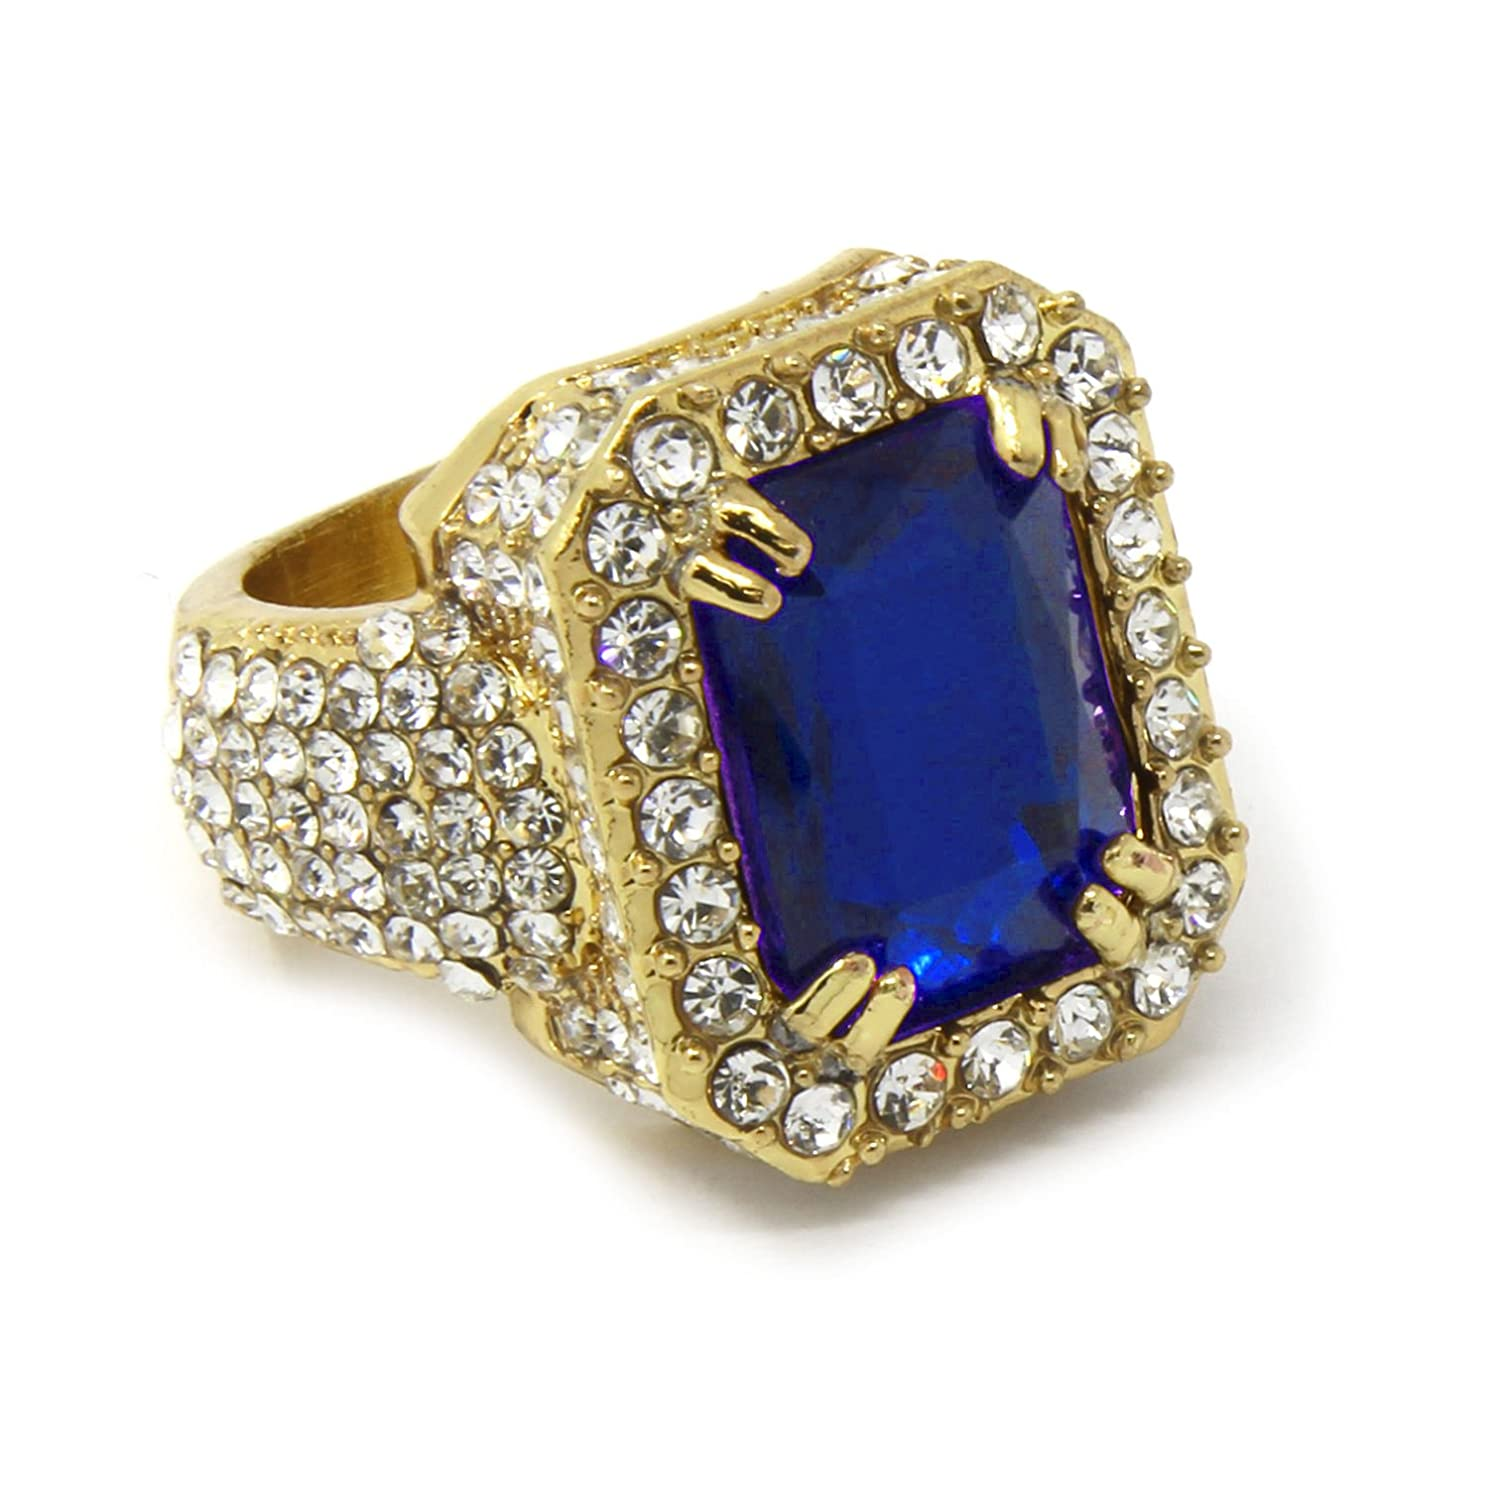 Men's 14k Gold Plated Hip Hop Iced Blue Ruby Cz Ring Size Available 7 8 9 10 11 12